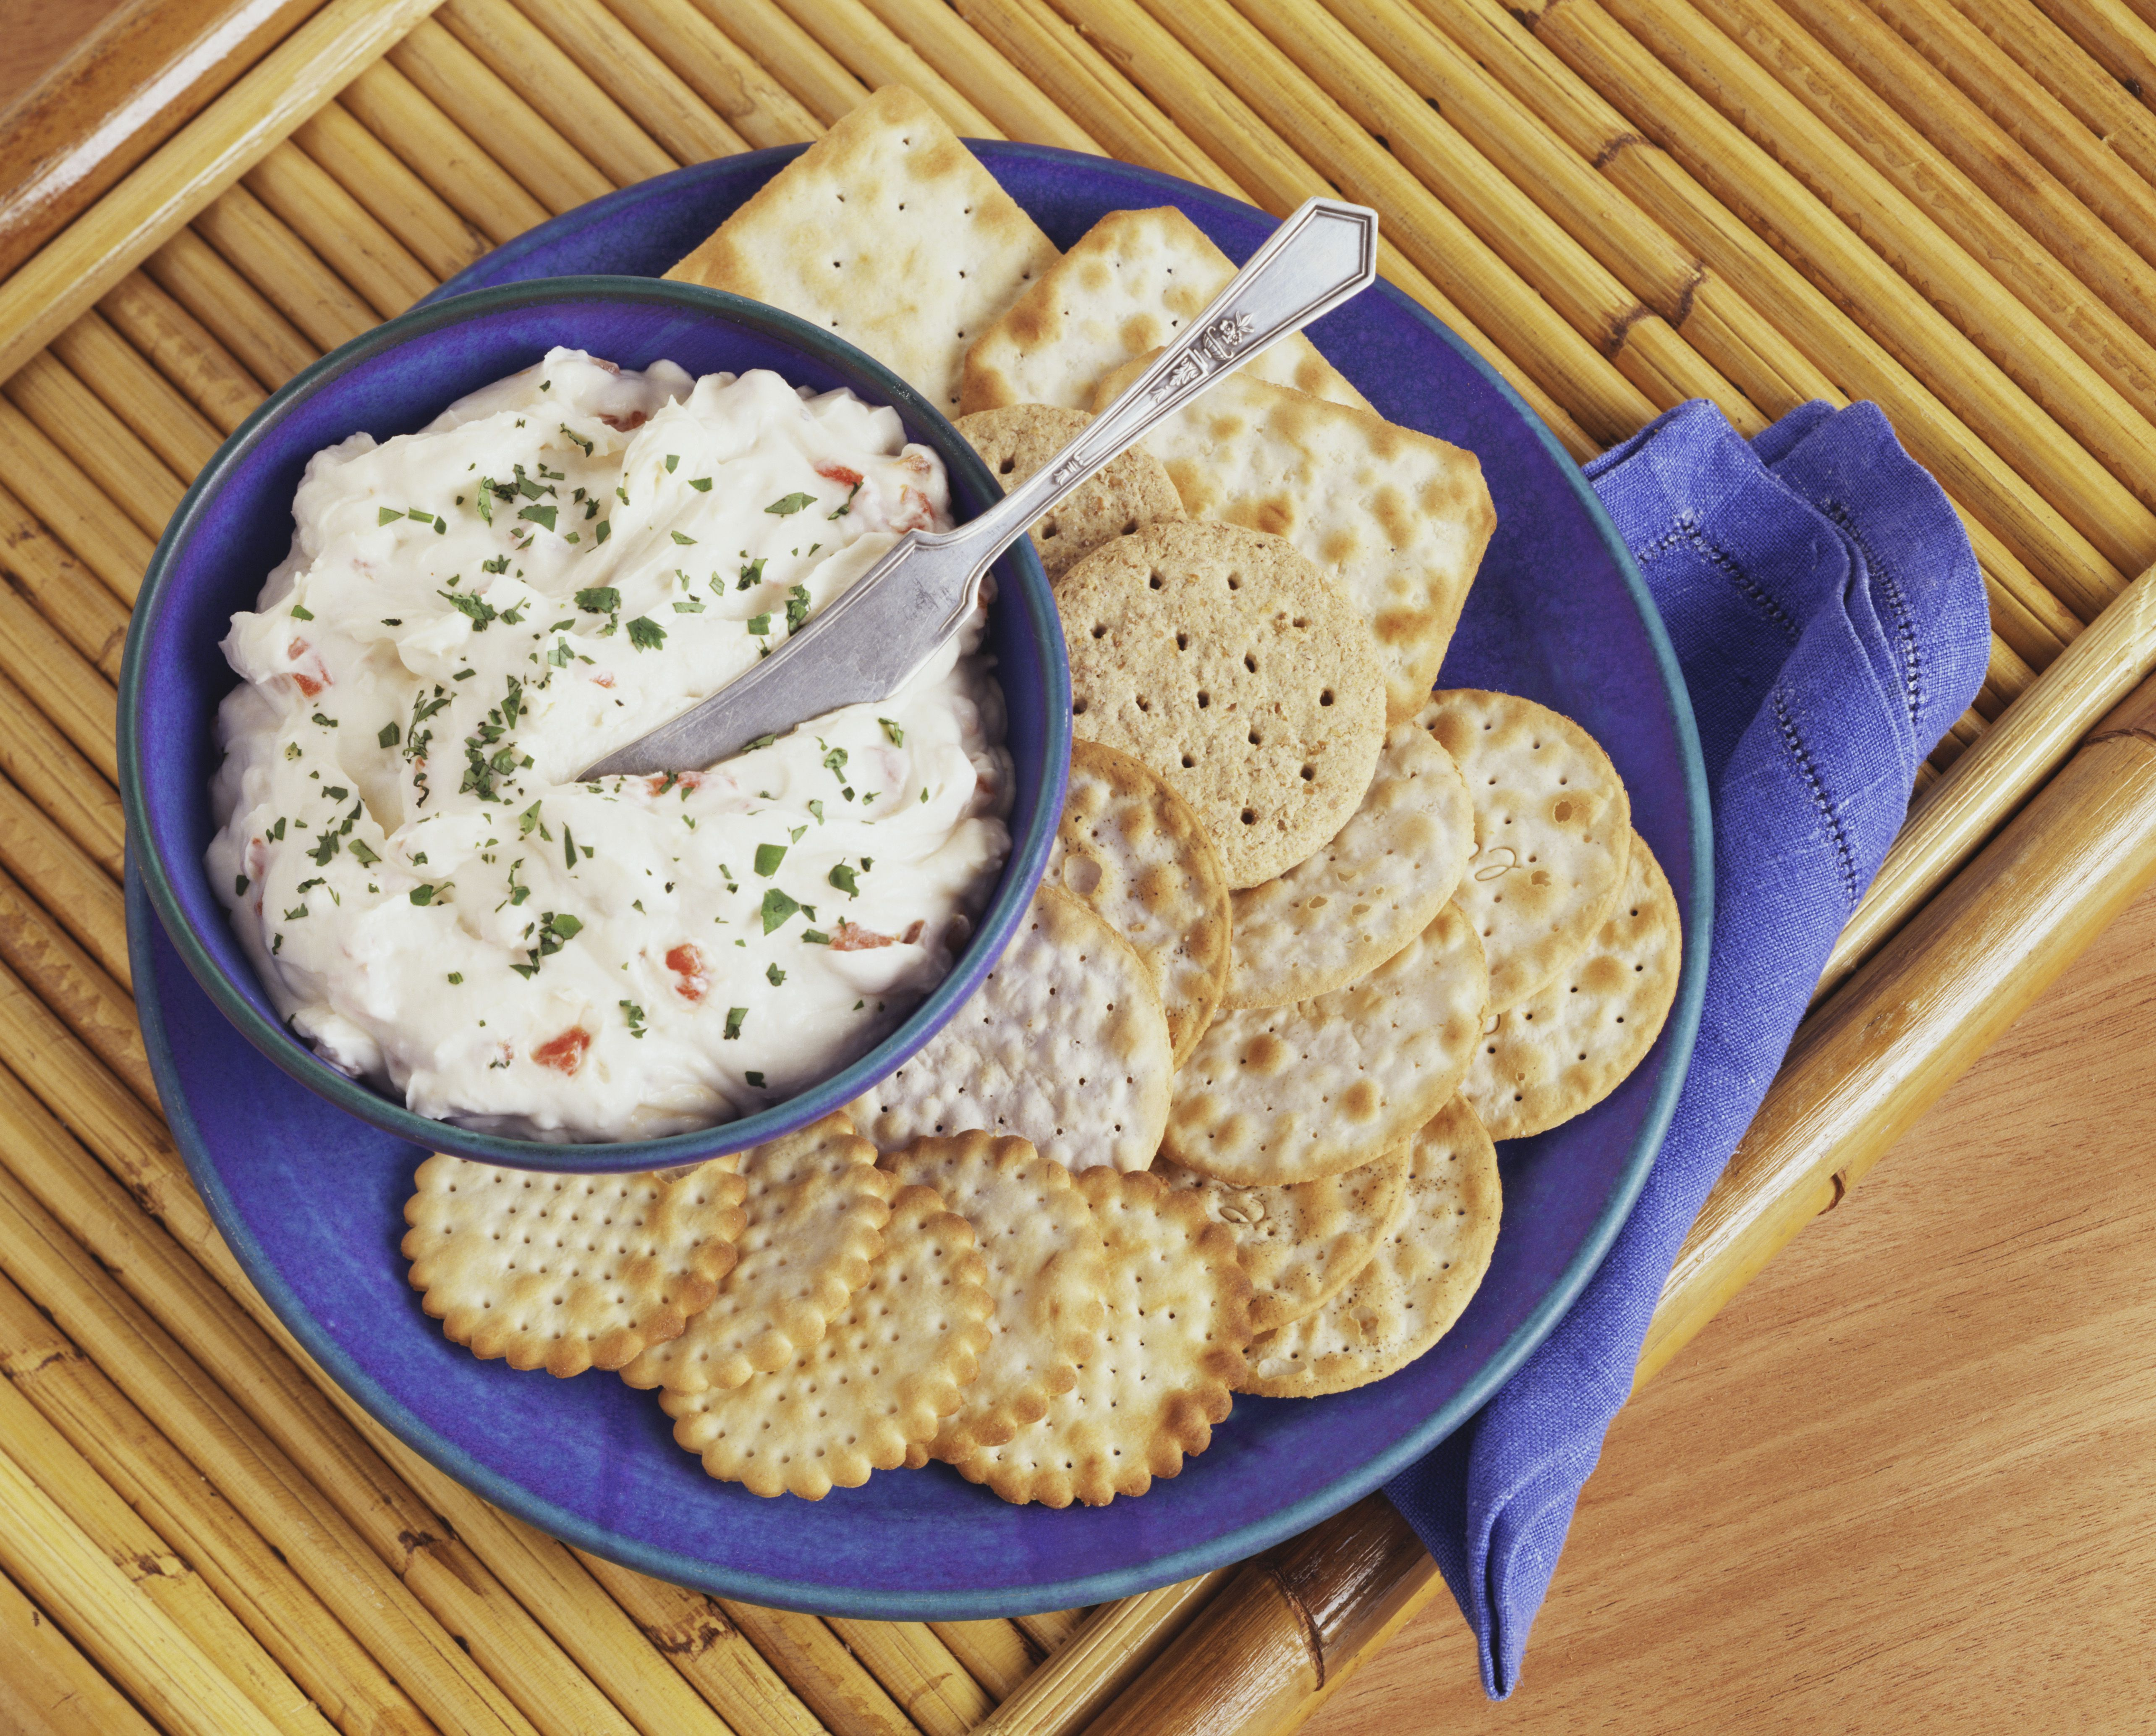 Crab dip with crackers